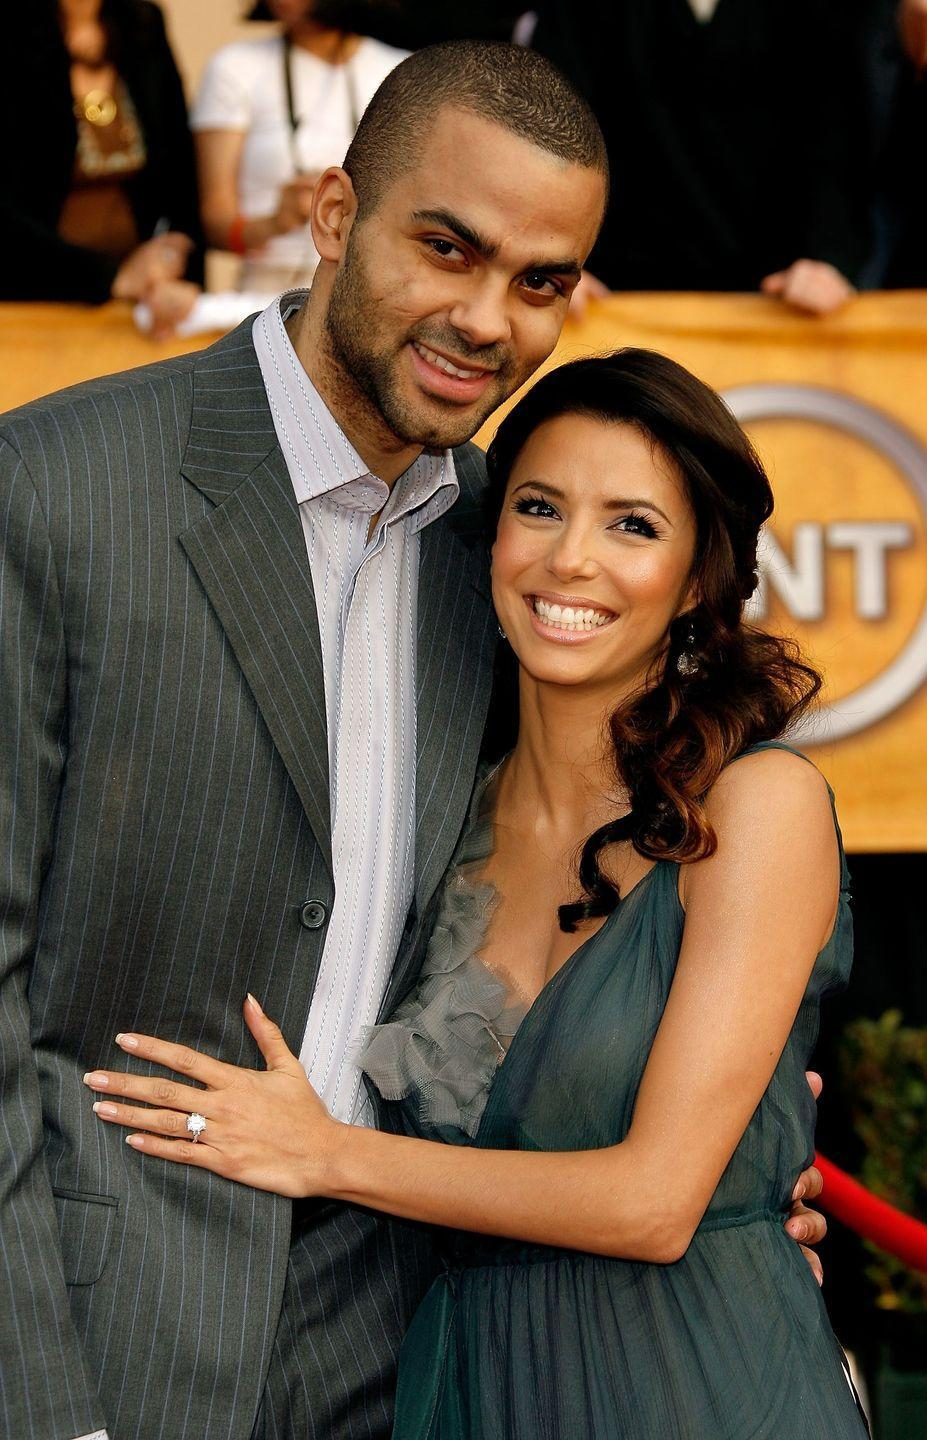 "<p><a href=""http://people.com/celebrity/eva-longoria-and-tony-parker-marry-in-a-french-church/"" rel=""nofollow noopener"" target=""_blank"" data-ylk=""slk:Eva Longoria and Tony Parker"" class=""link rapid-noclick-resp"">Eva Longoria and Tony Parker</a> got married at the Church of Saint Germain L'Auxerrois in Paris in July 2007. Longoria wore a couture Angel Sanchez mermaid gown, and guests included Jessica Alba and <em>Desperate Housewives </em>co-stars. Parker and Longoria separated in 2011. </p>"